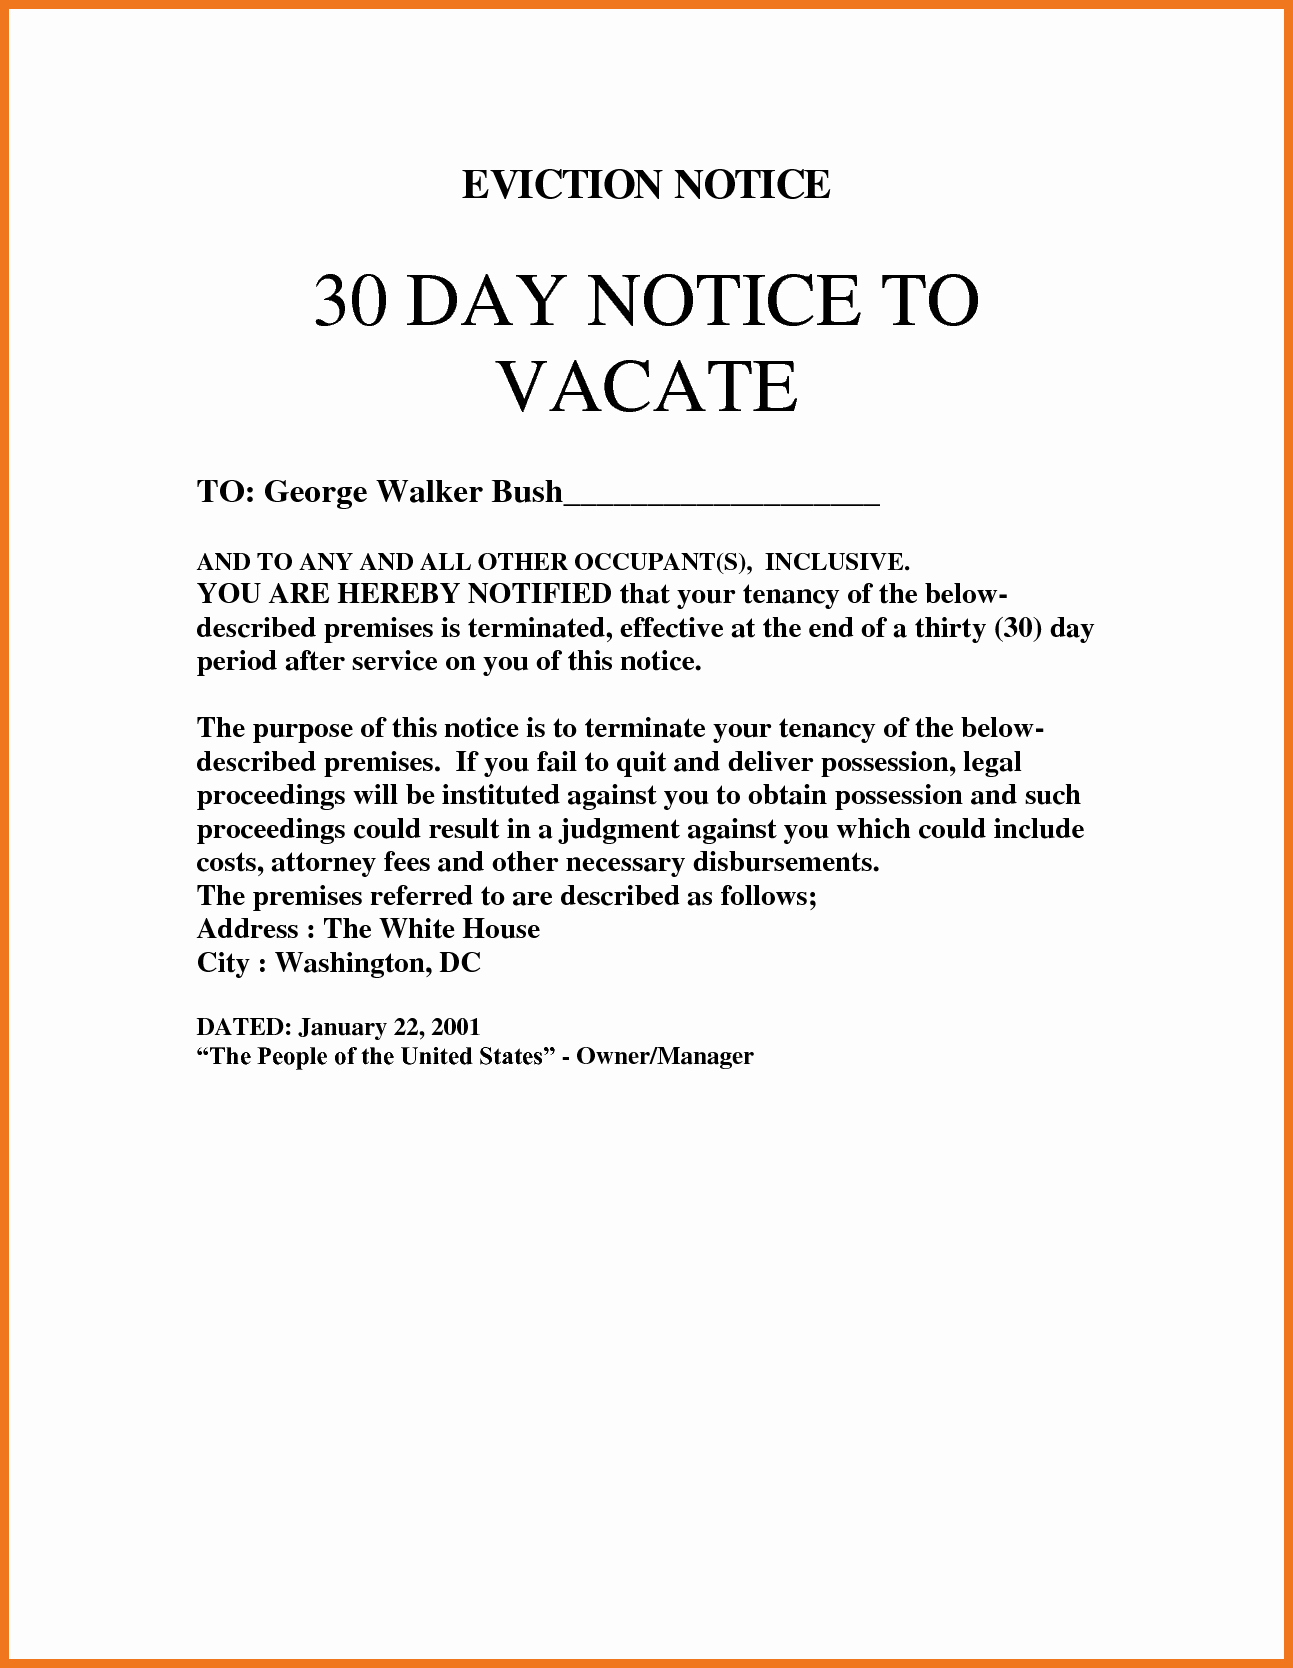 30 Day Eviction Notice Template Inspirational 10 11 30 Day Notice to Vacate Letter